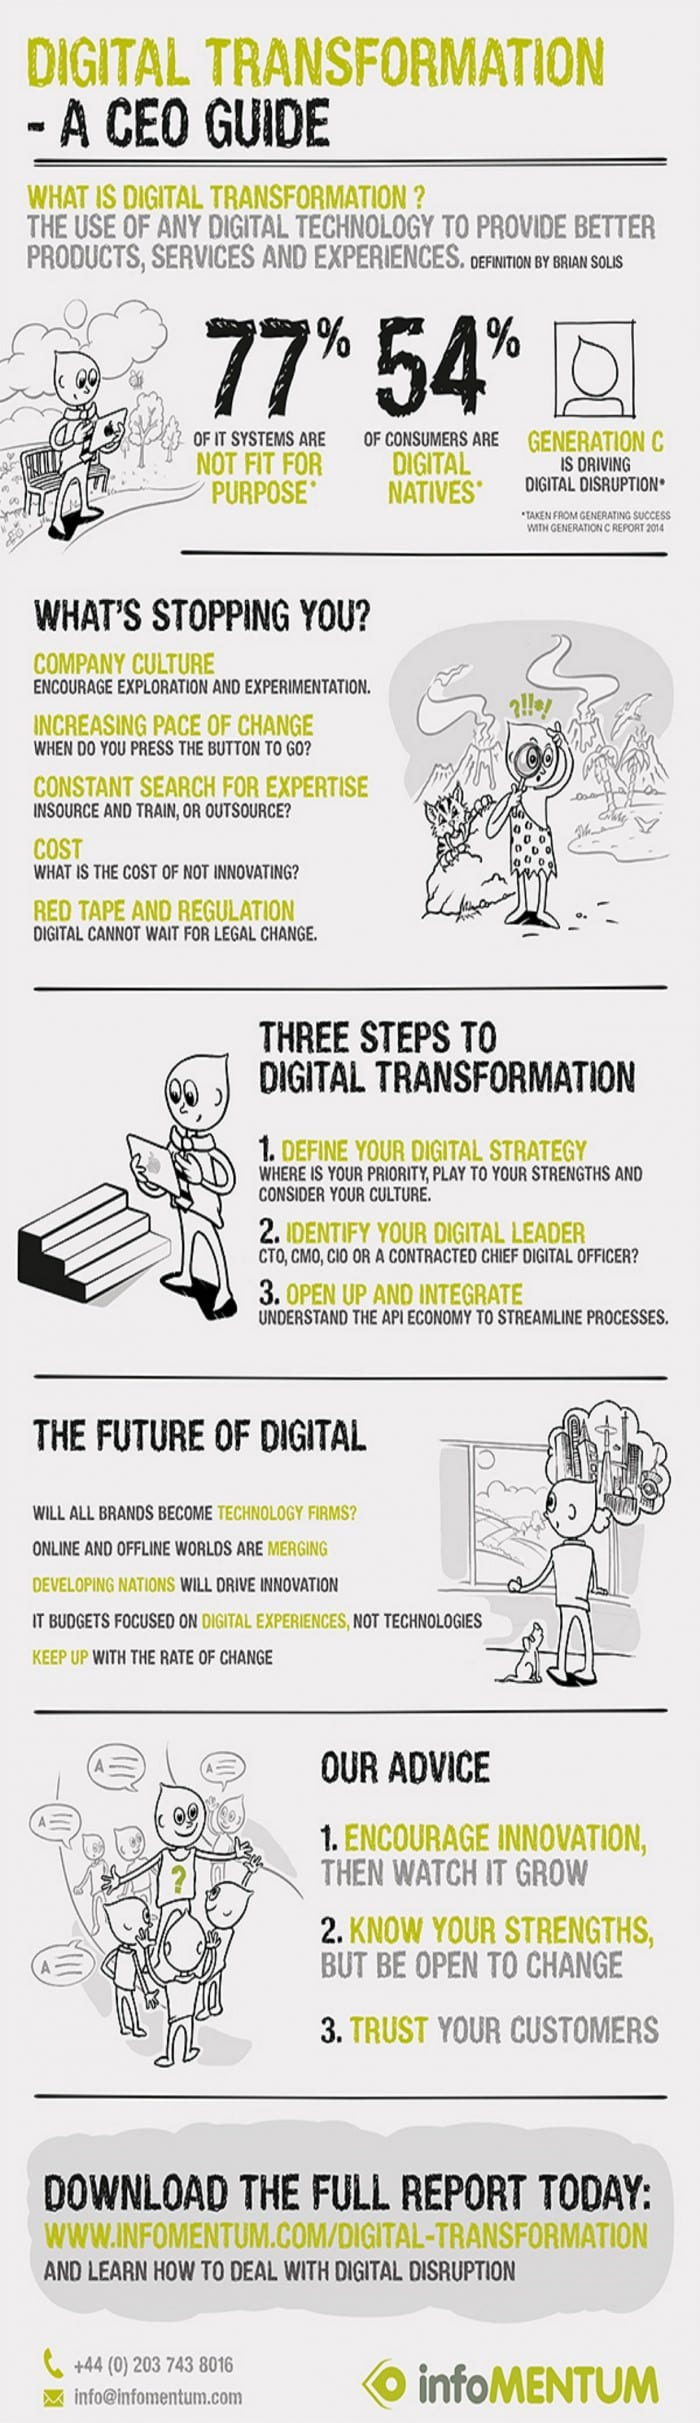 Digital transformation - introduction and definition